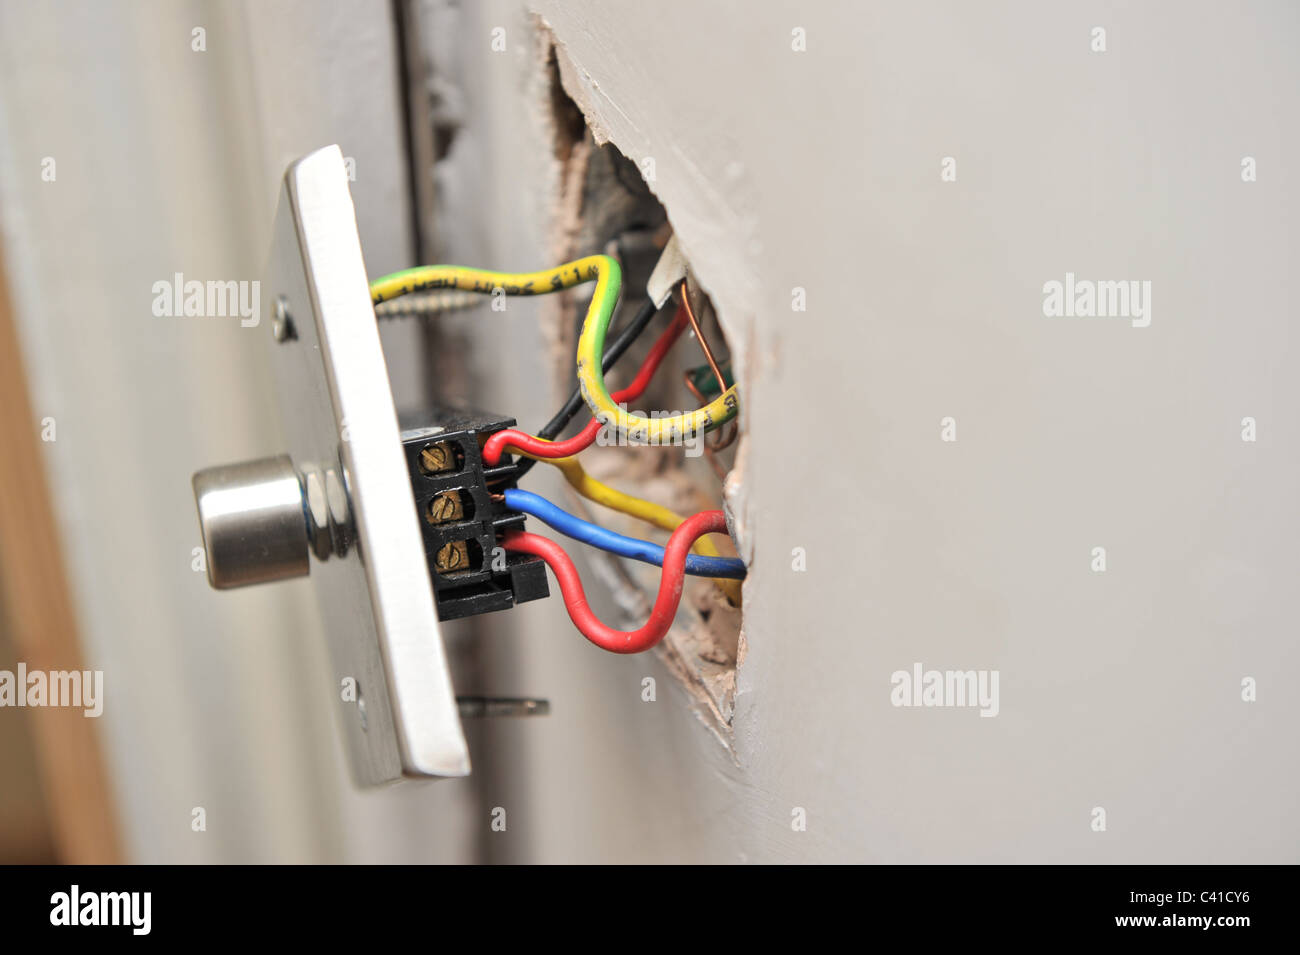 hight resolution of a faulty house light dimmer switch pulled away from wall showing electrical wires in parallel during diy